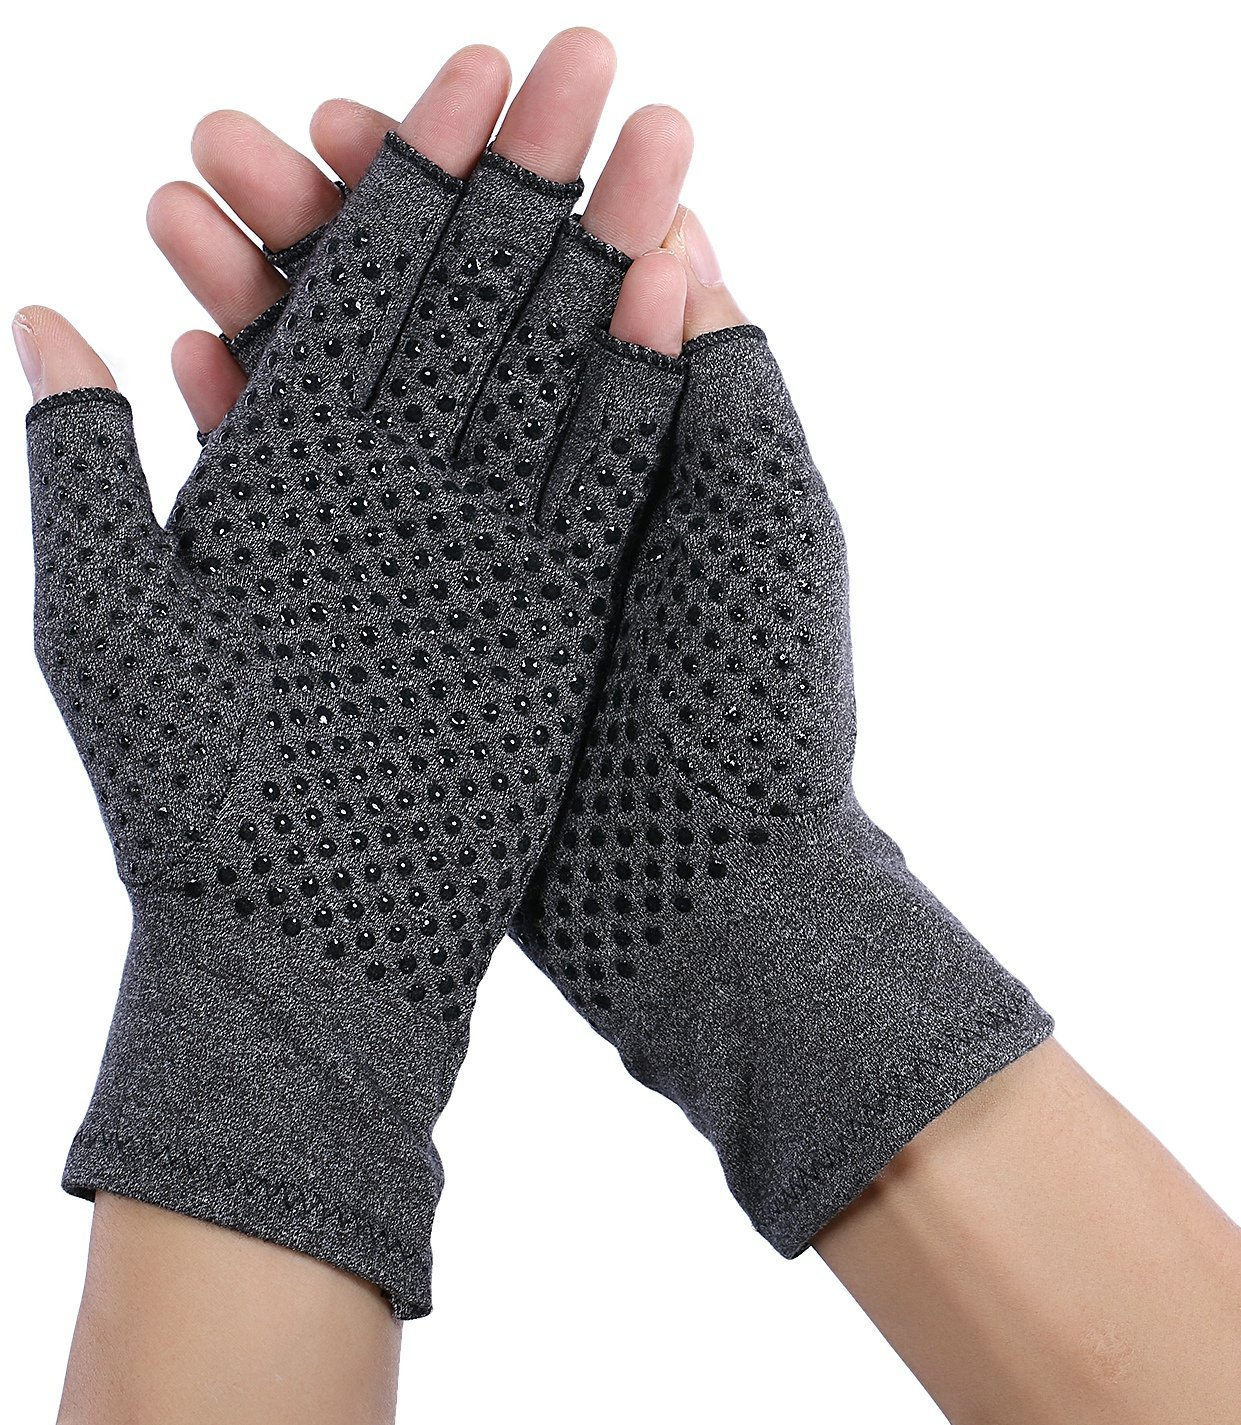 Compression Arthritis Gloves (Fingerless) - Textured Open Finger Compression Hand Gloves for Rheumatoid and Osteoarthritis - Joint Pain Relief for Men & Women - Open Finger (Medium) by Capol